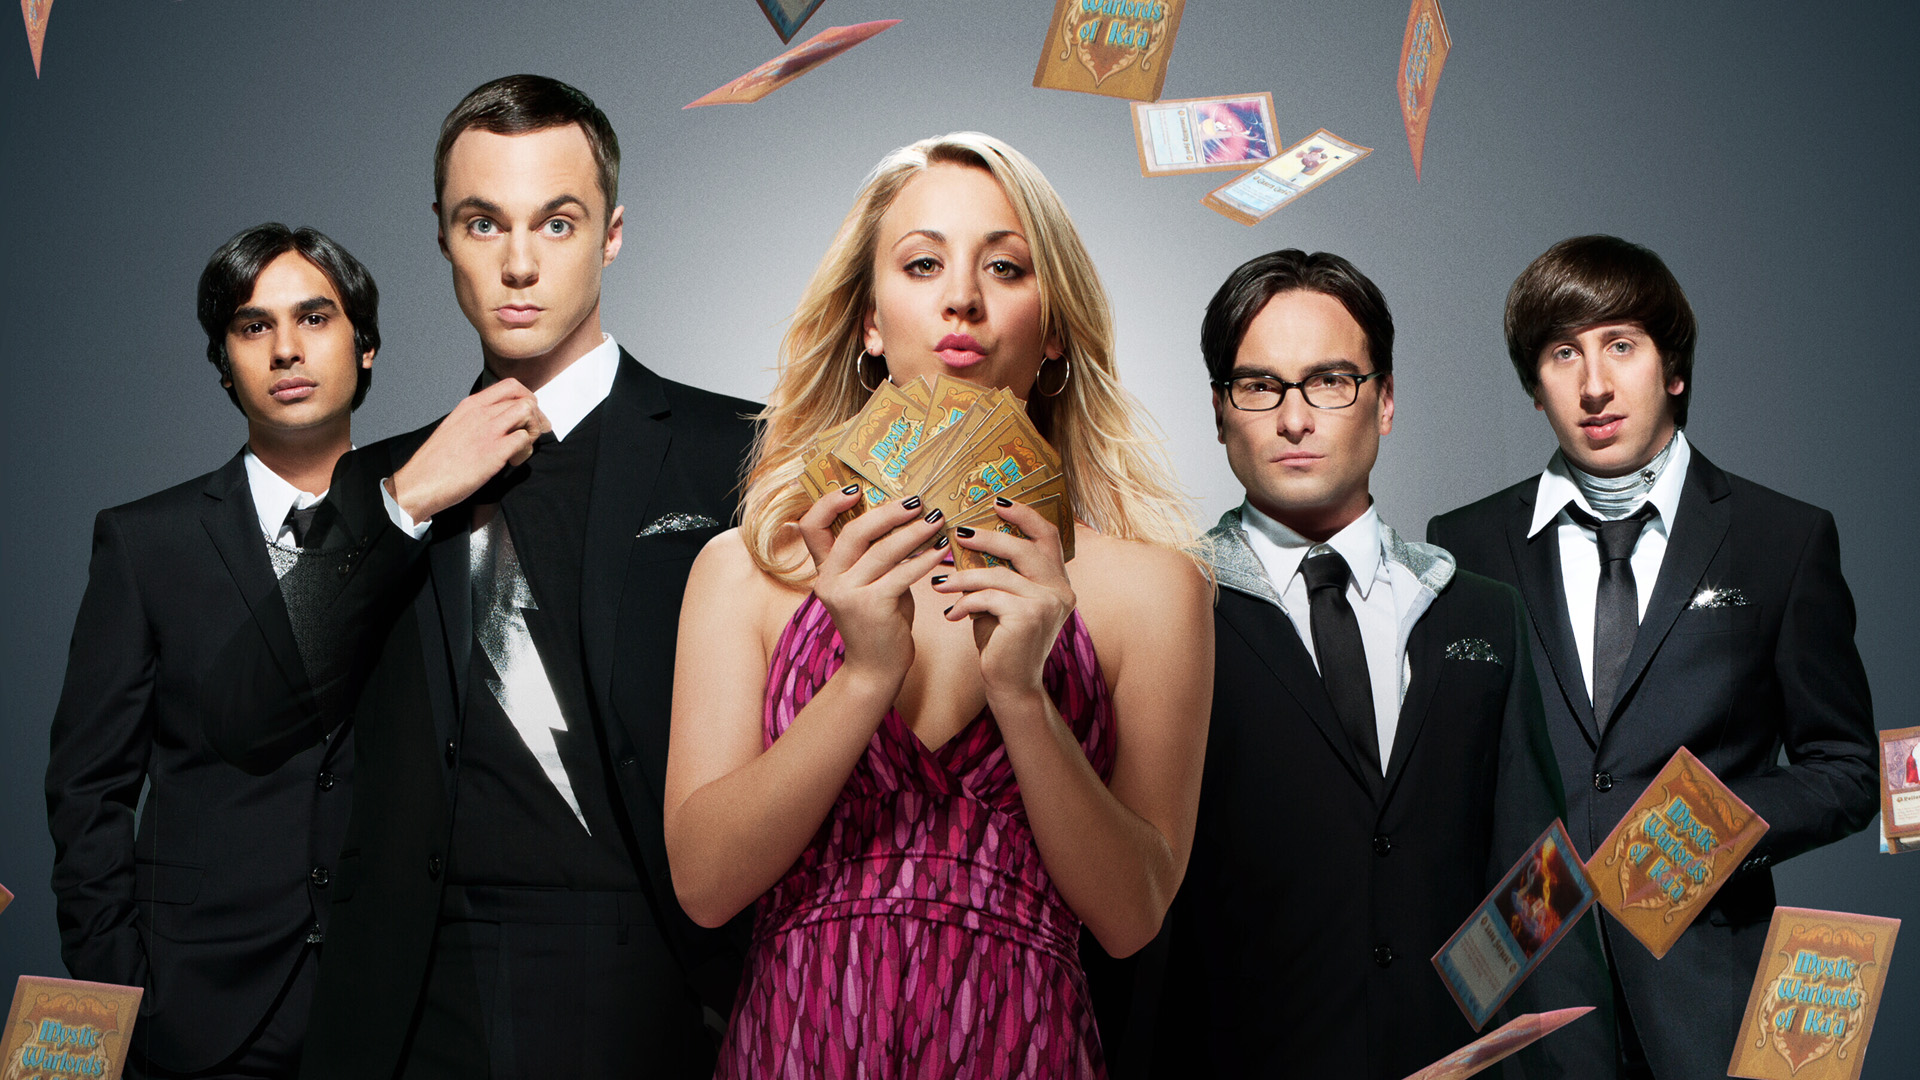 Profenetwork The Big Bang Theory